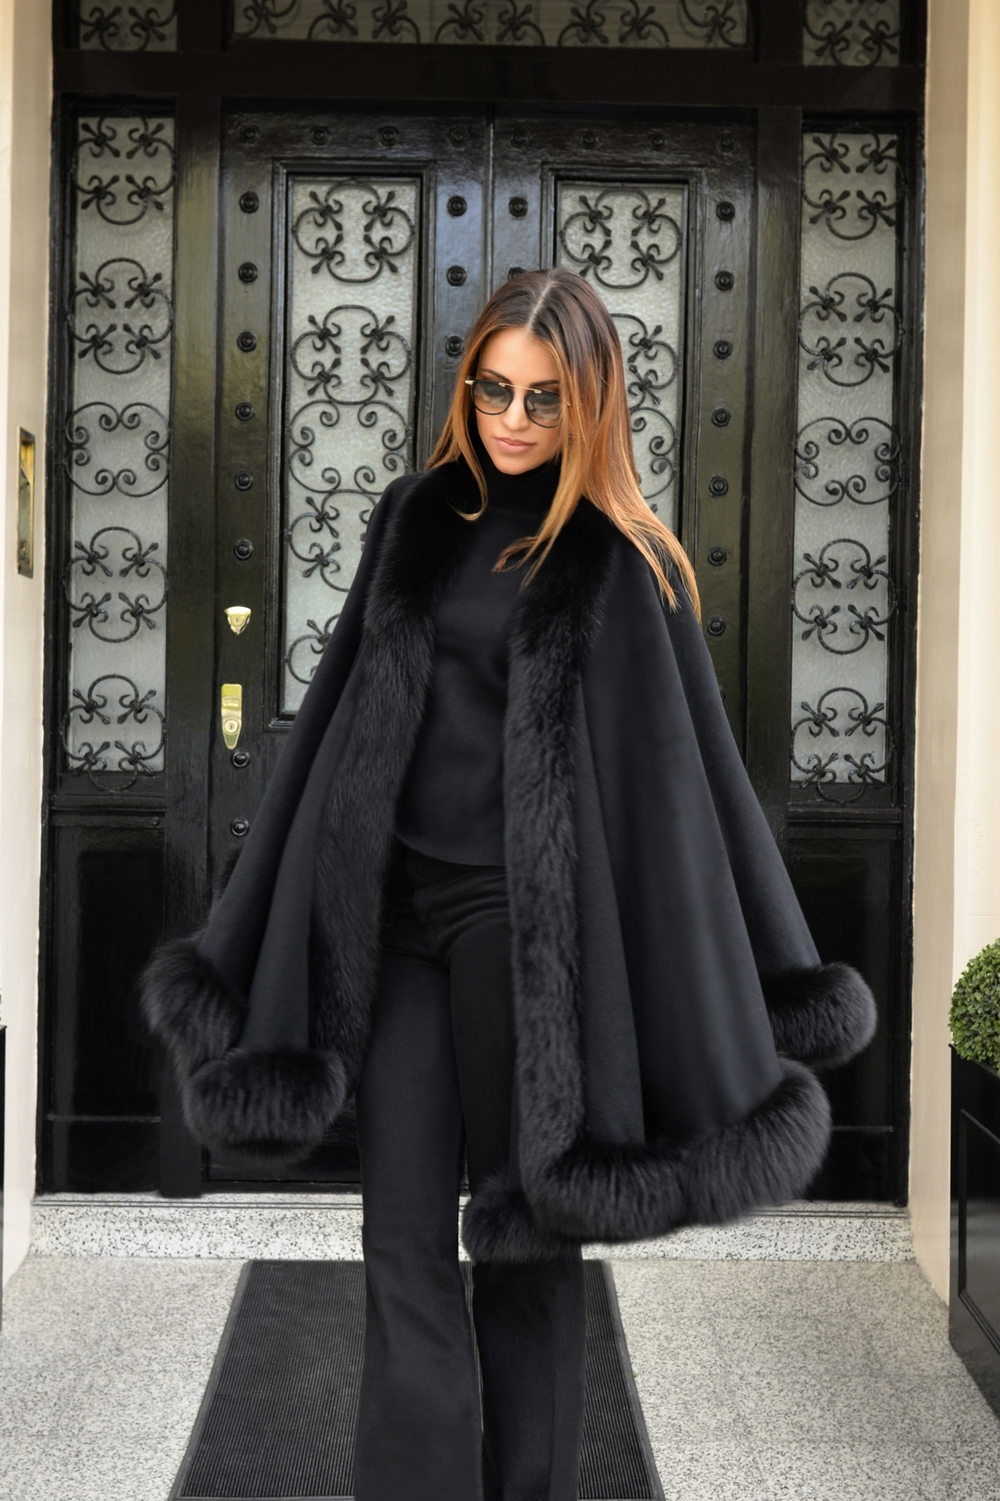 photo (4) #BlackFriday OOTD. Sharp and modern all black look. Ultra soft black cashmere cape with fur. Worn by Fashion Blogger Maureen Sophie Kragt from TheVanillawoods Blog.